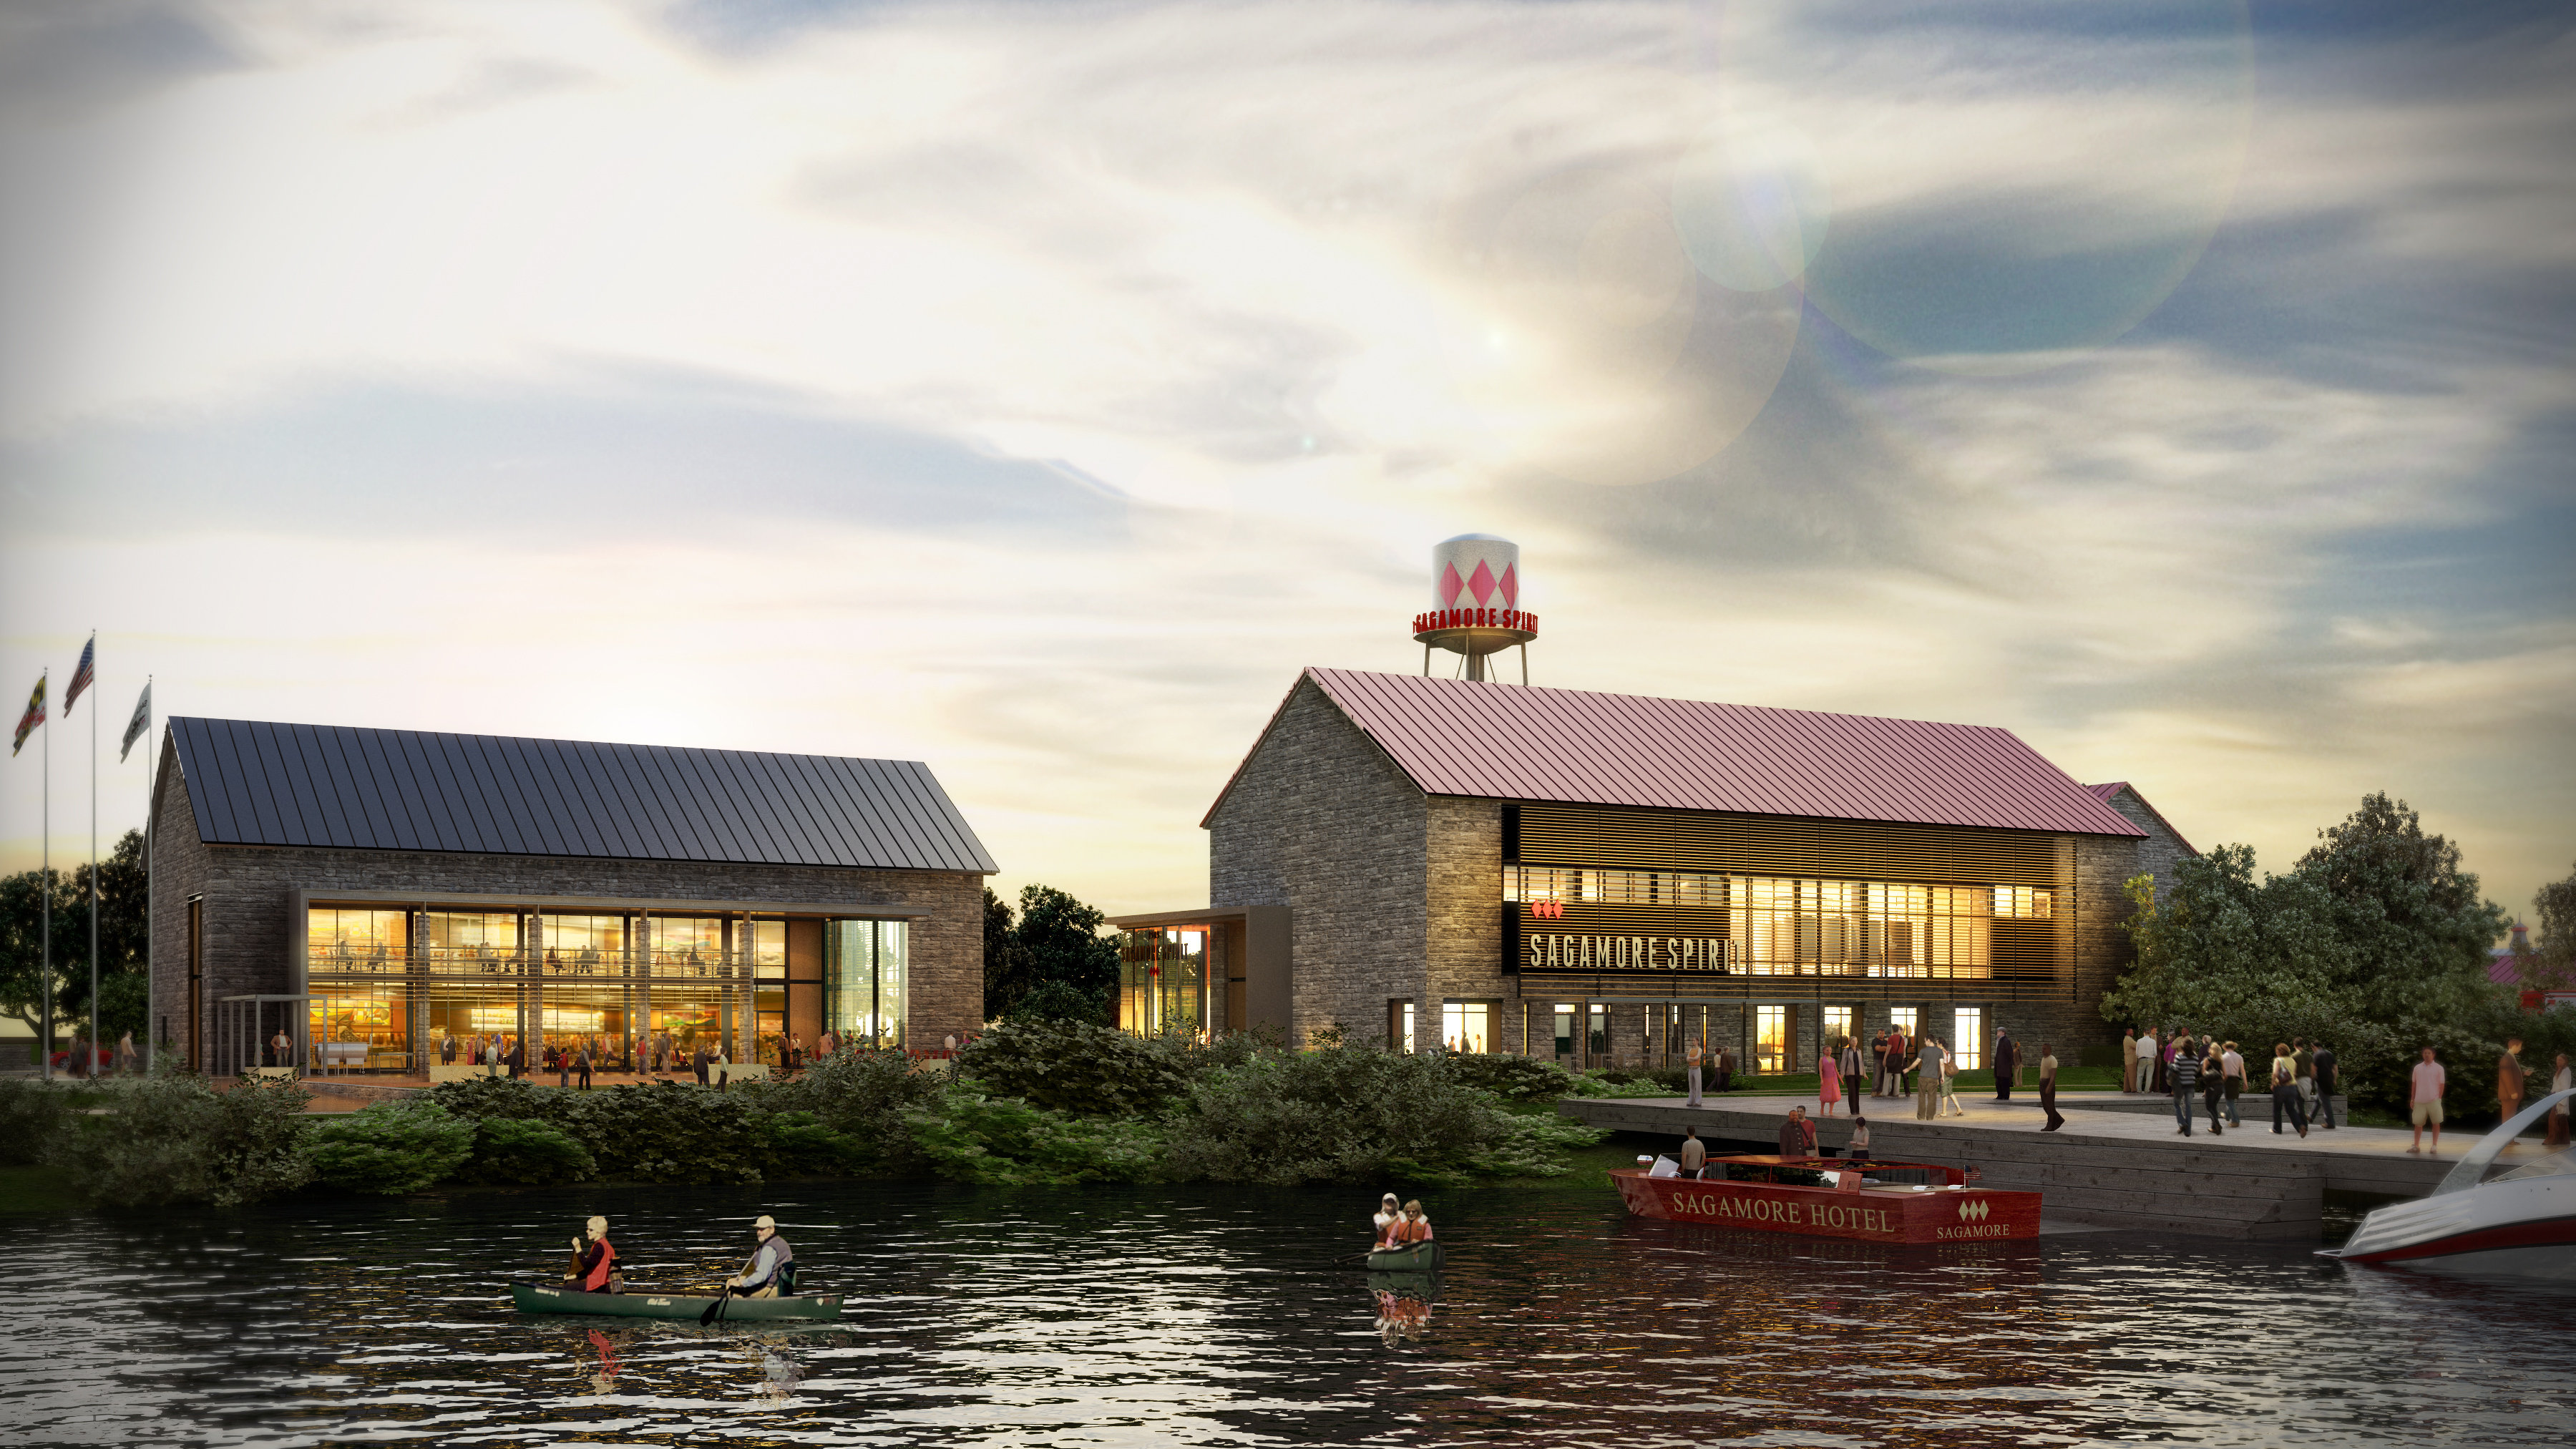 Sagamore Spirit opens its waterfront distillery on East Cromwell Street in Port Covington on Friday, April 21, 2017 (Photo courtesy Sagamore/Maroon PR)